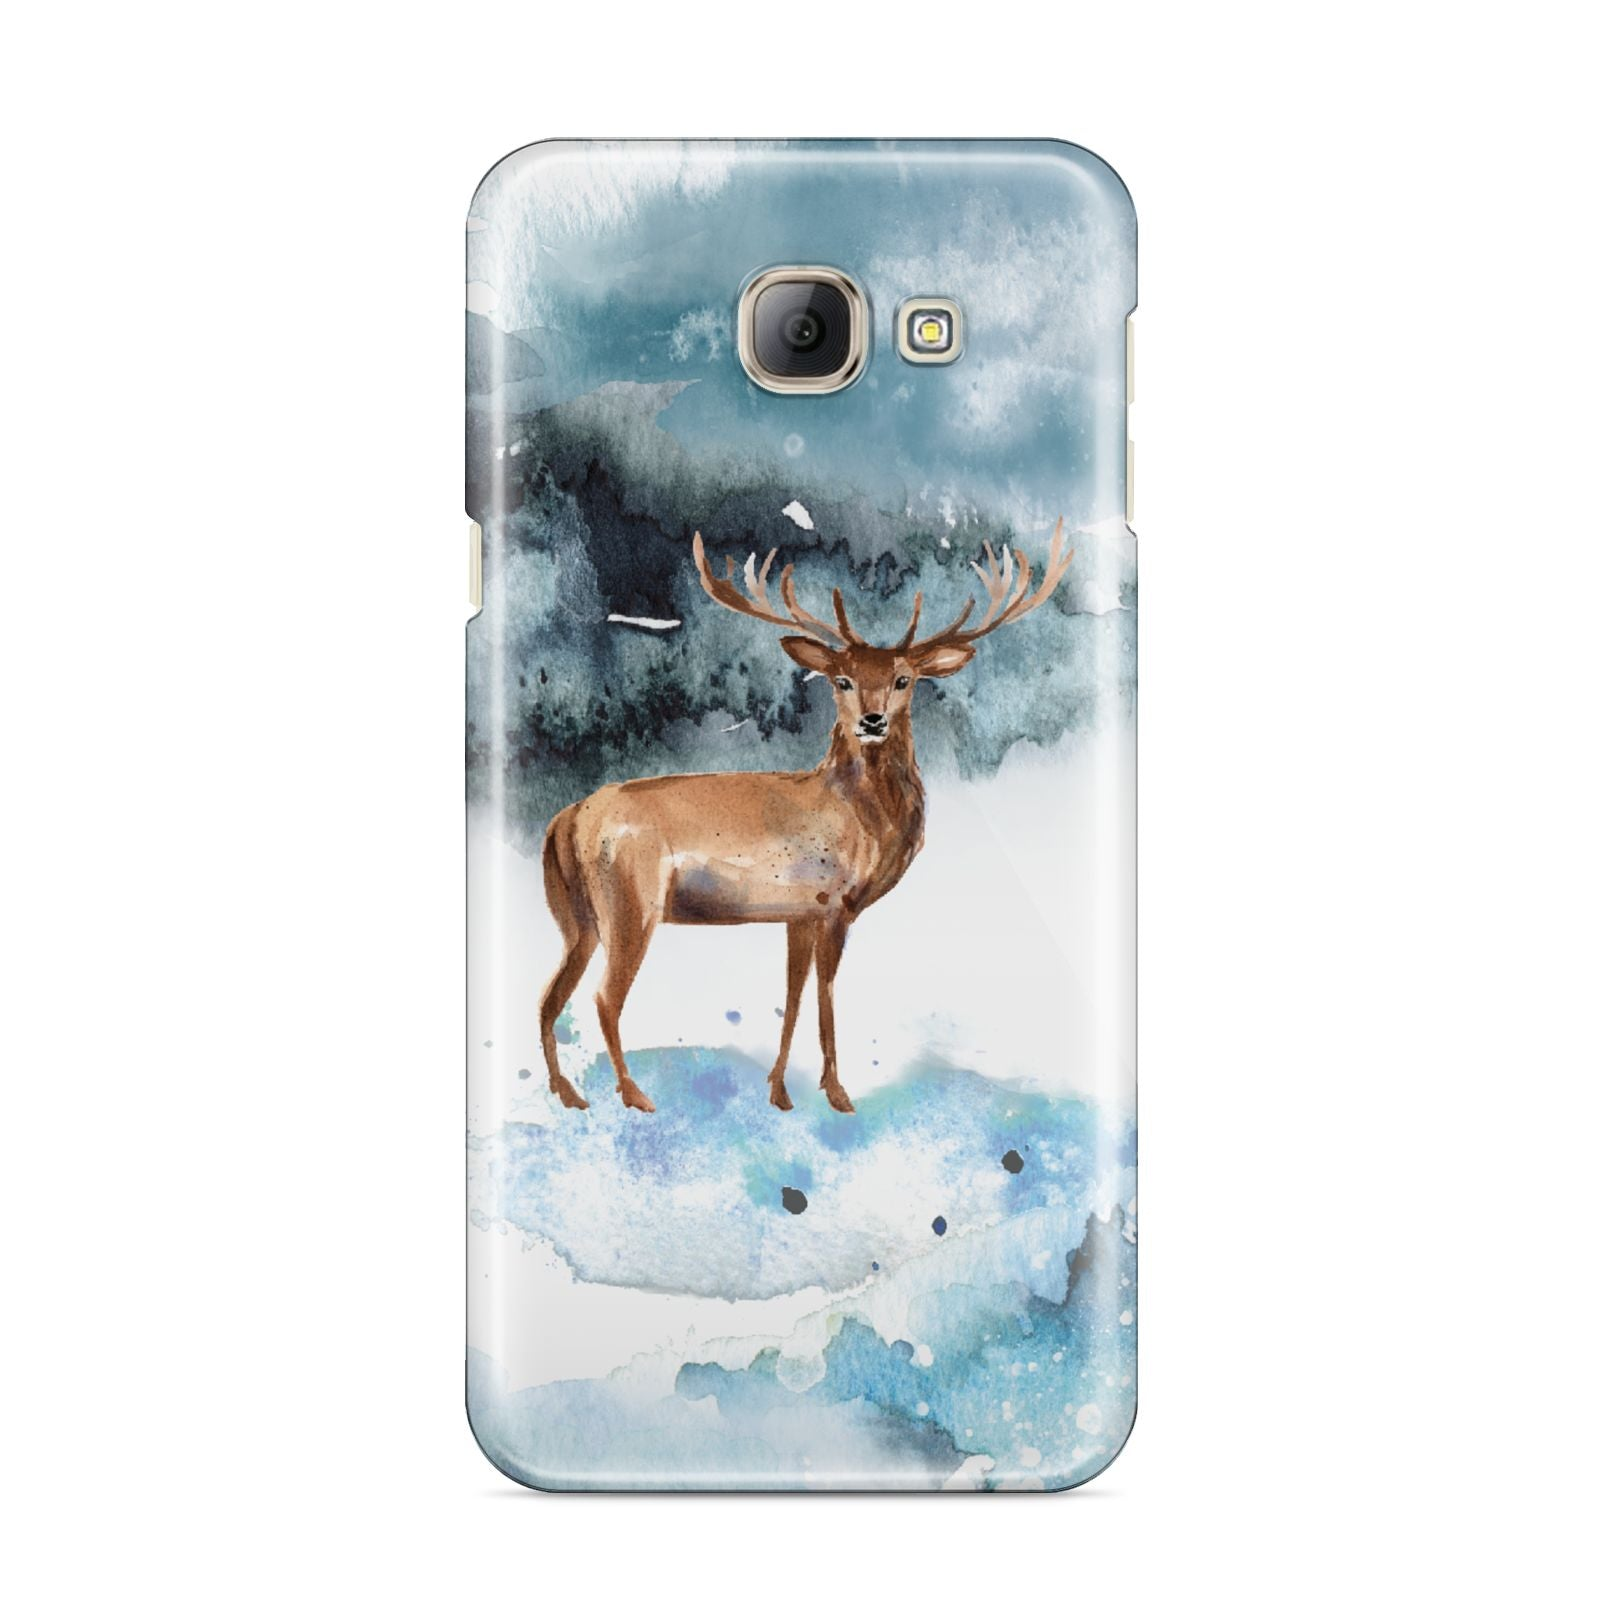 Christmas Winter Stag Samsung Galaxy A8 2016 Case